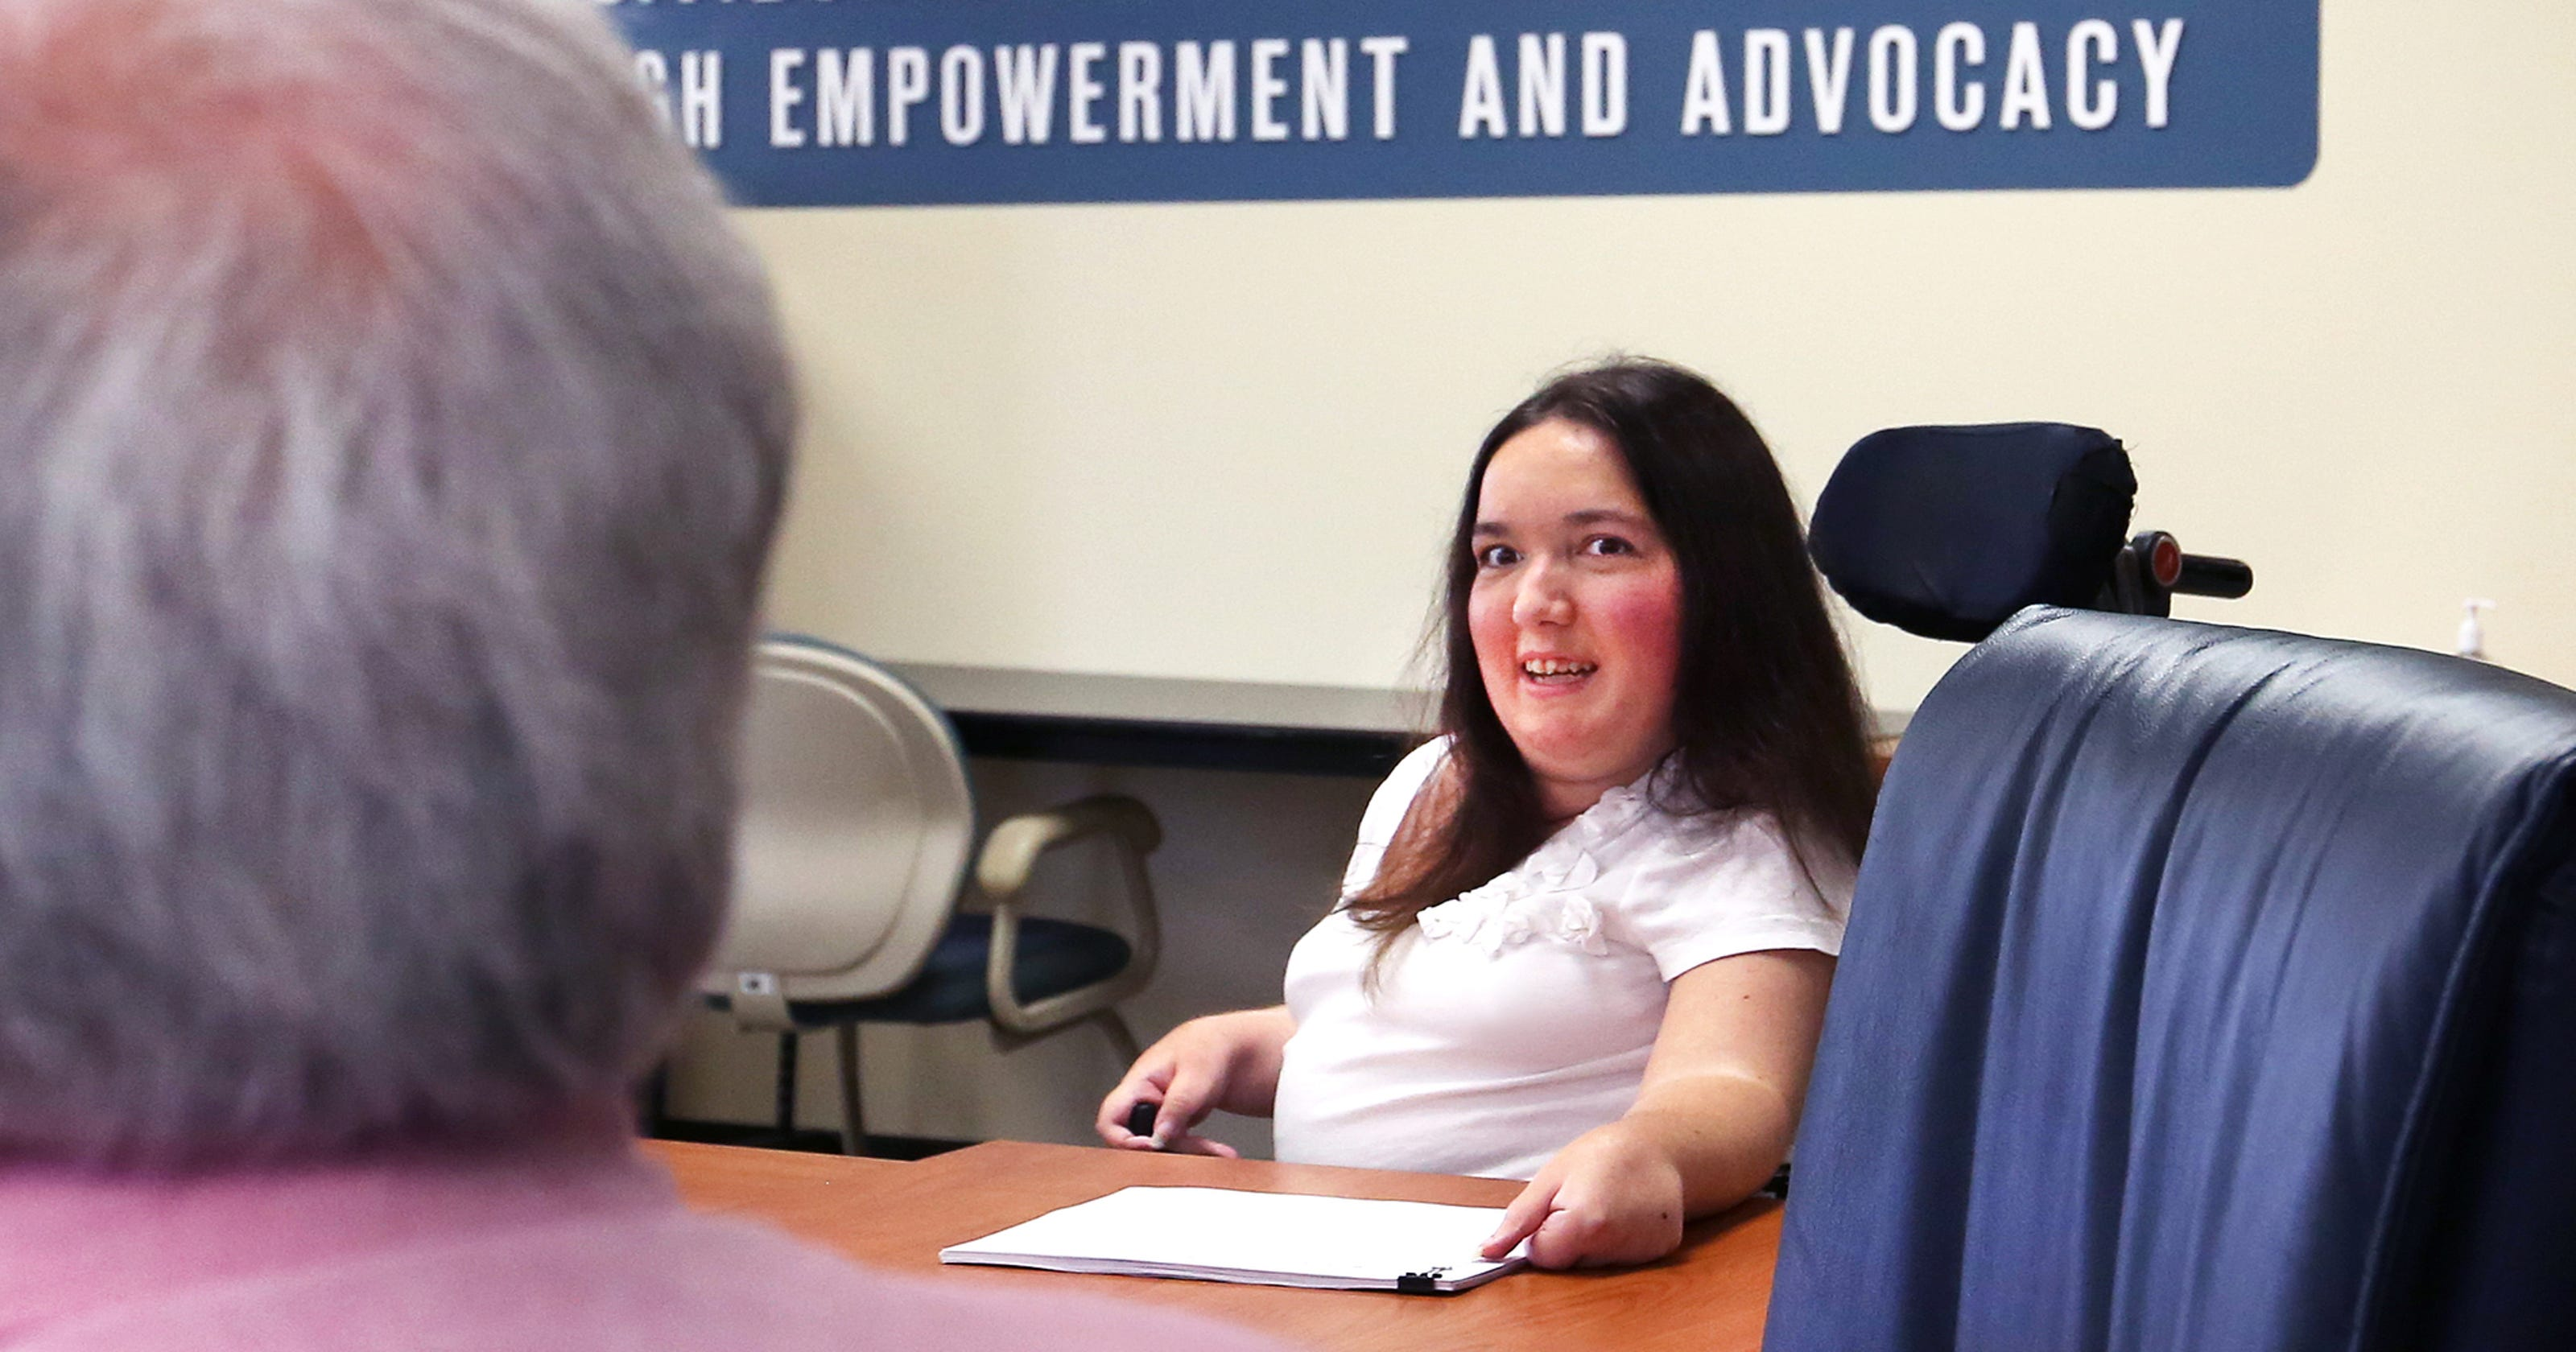 Indiana Disability Rights attorney shares her view